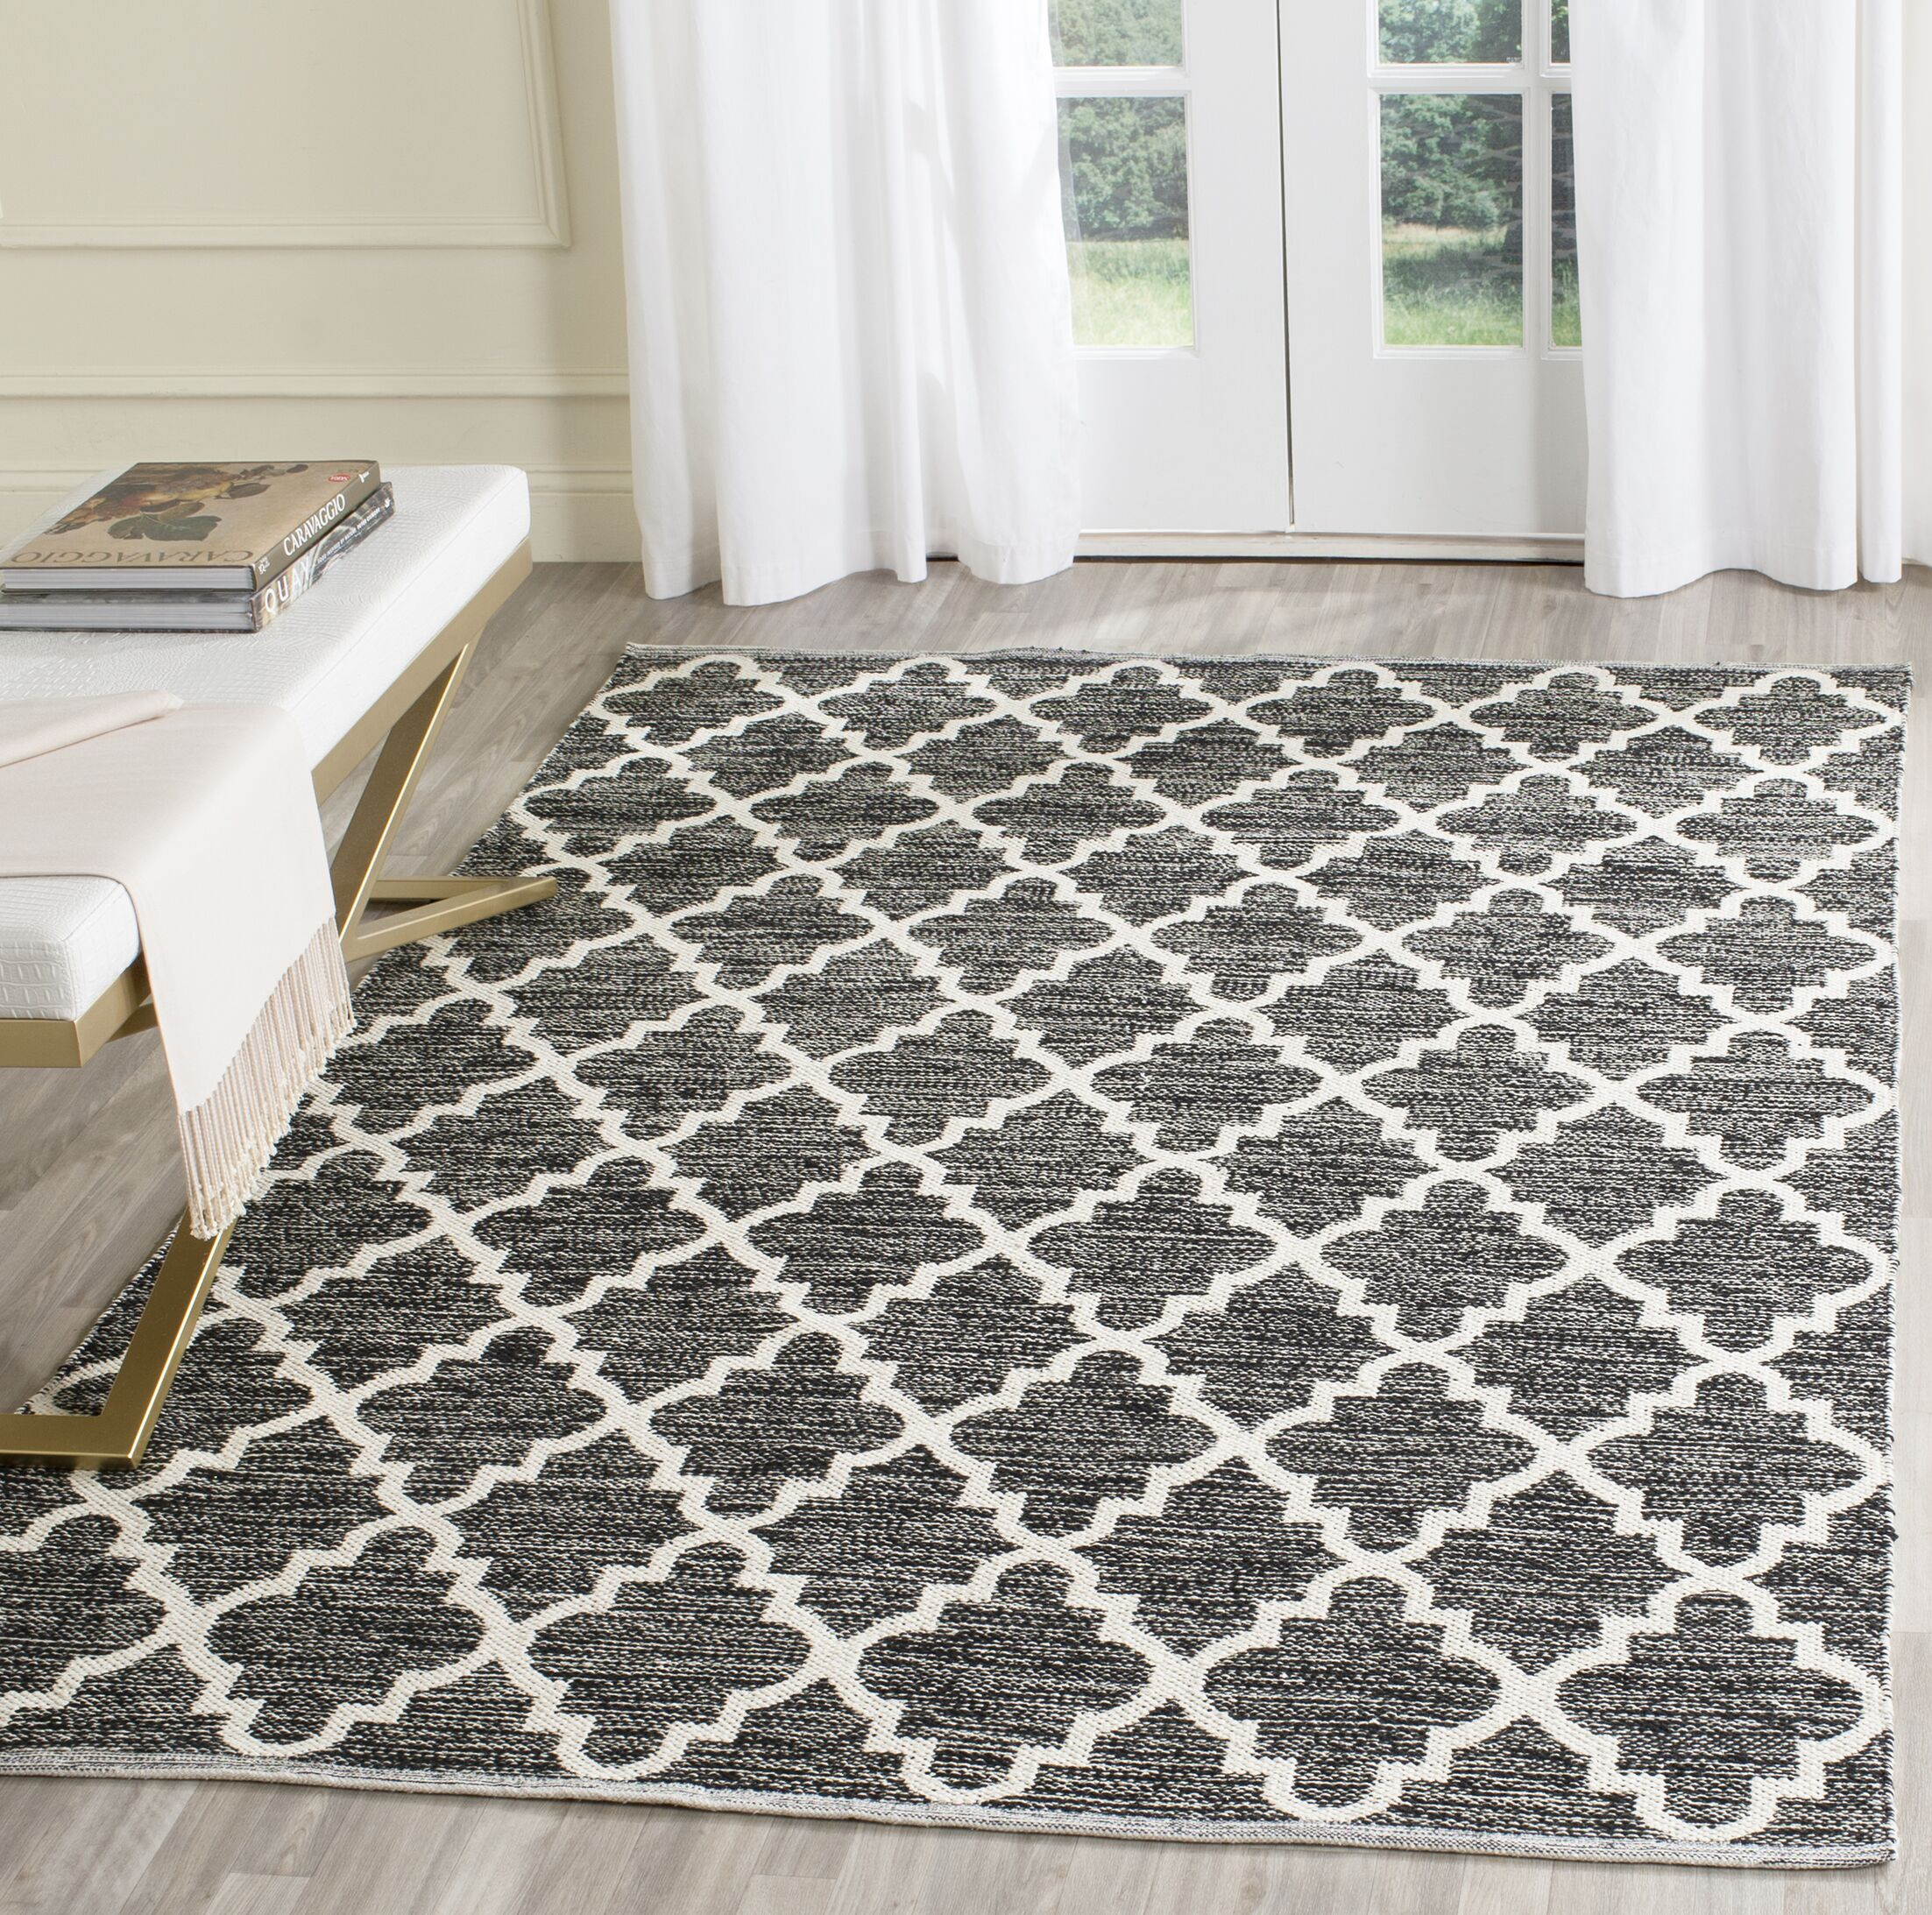 Valley Hand-Woven Black/Ivory Area Rug Rug Size: Rectangle 11' x 15'